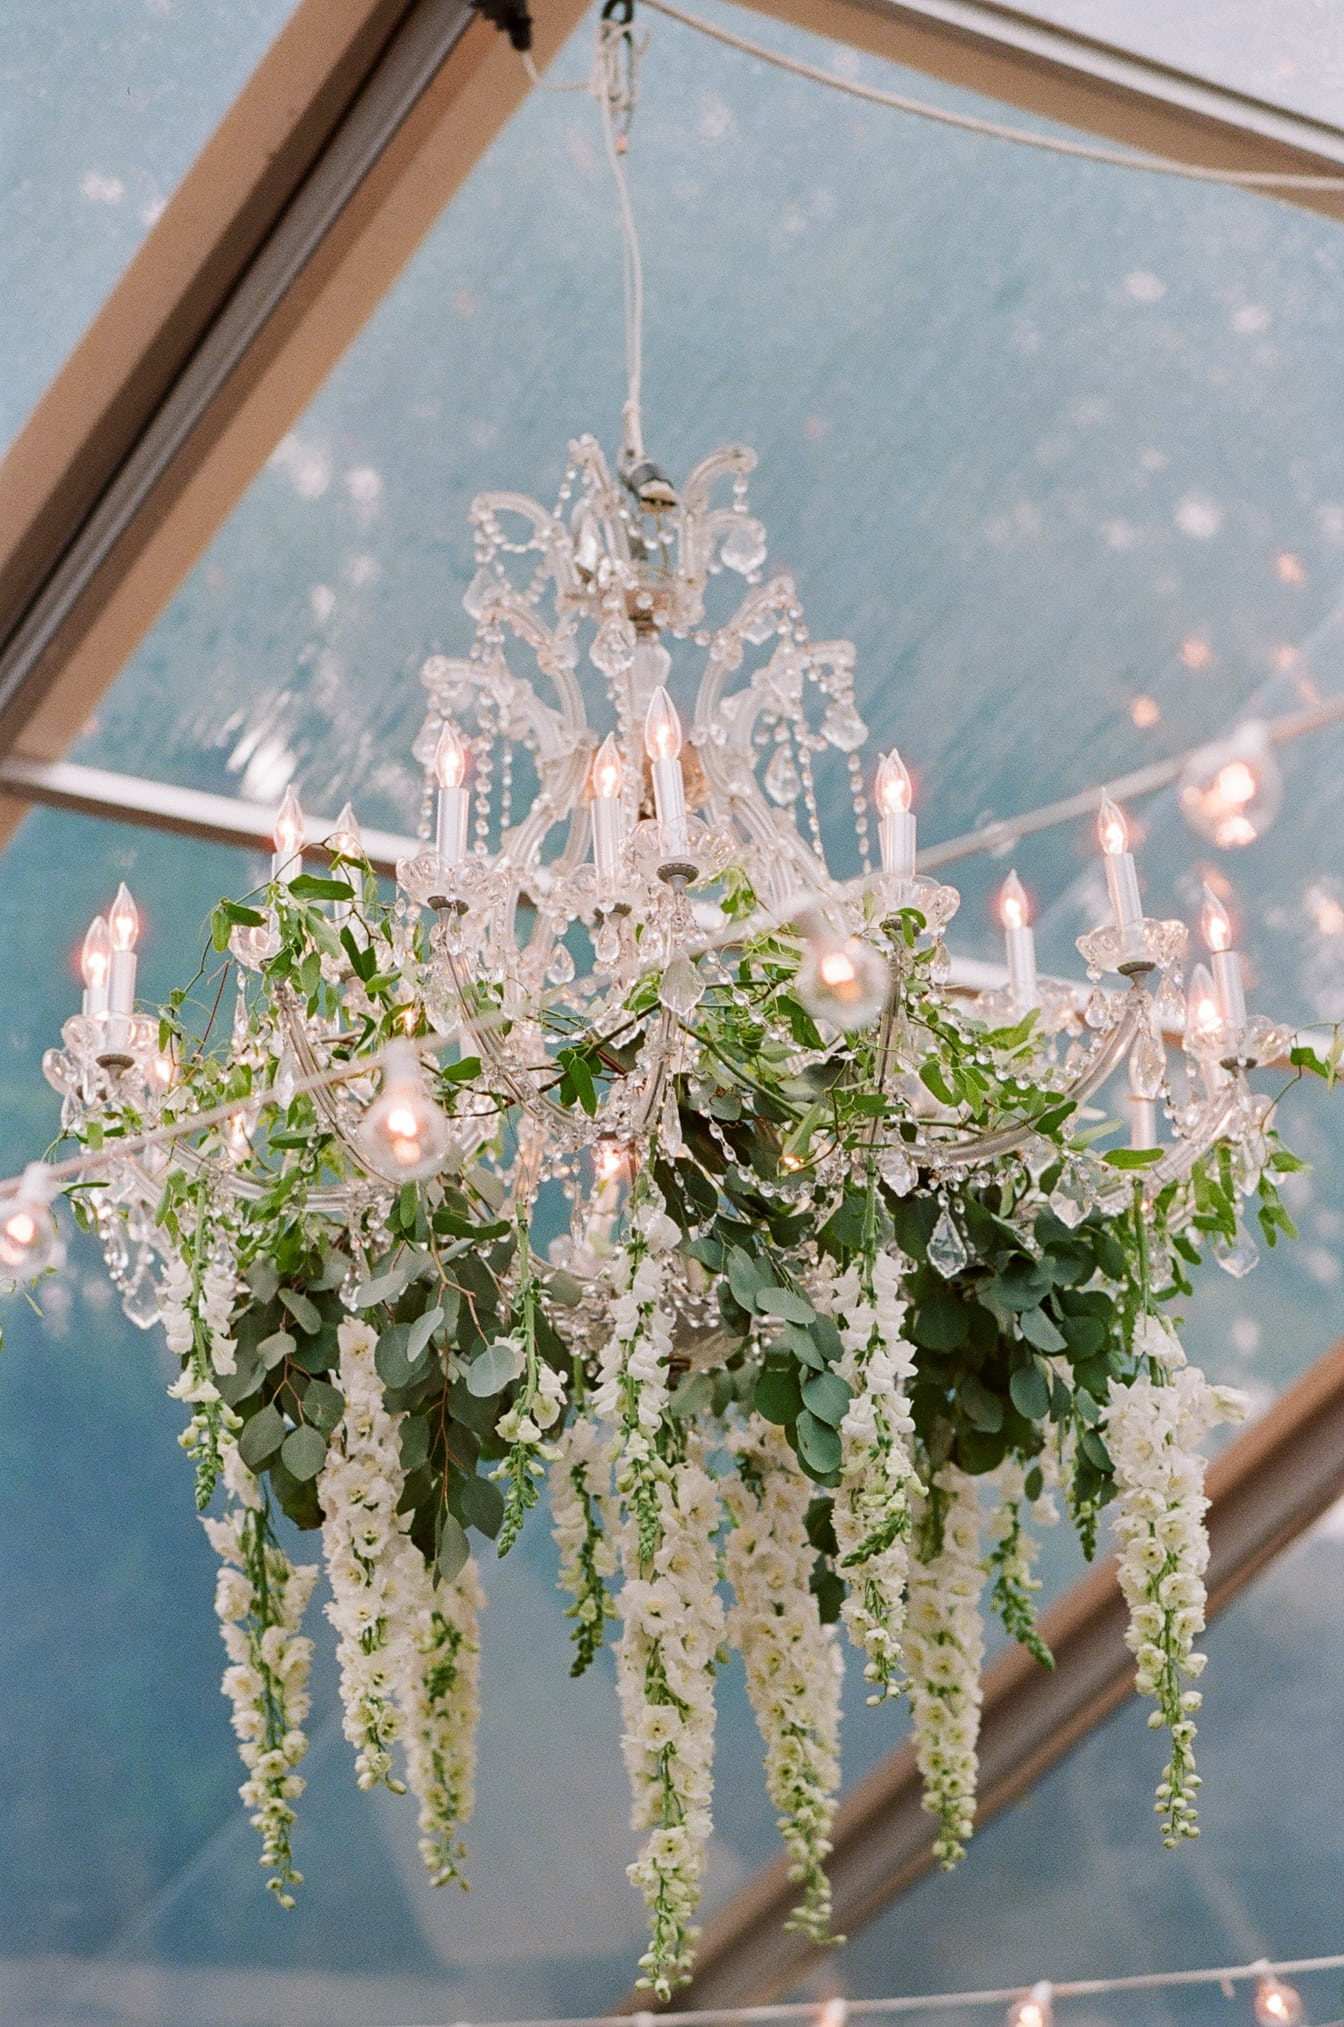 Chandelier adorned with whites and greens